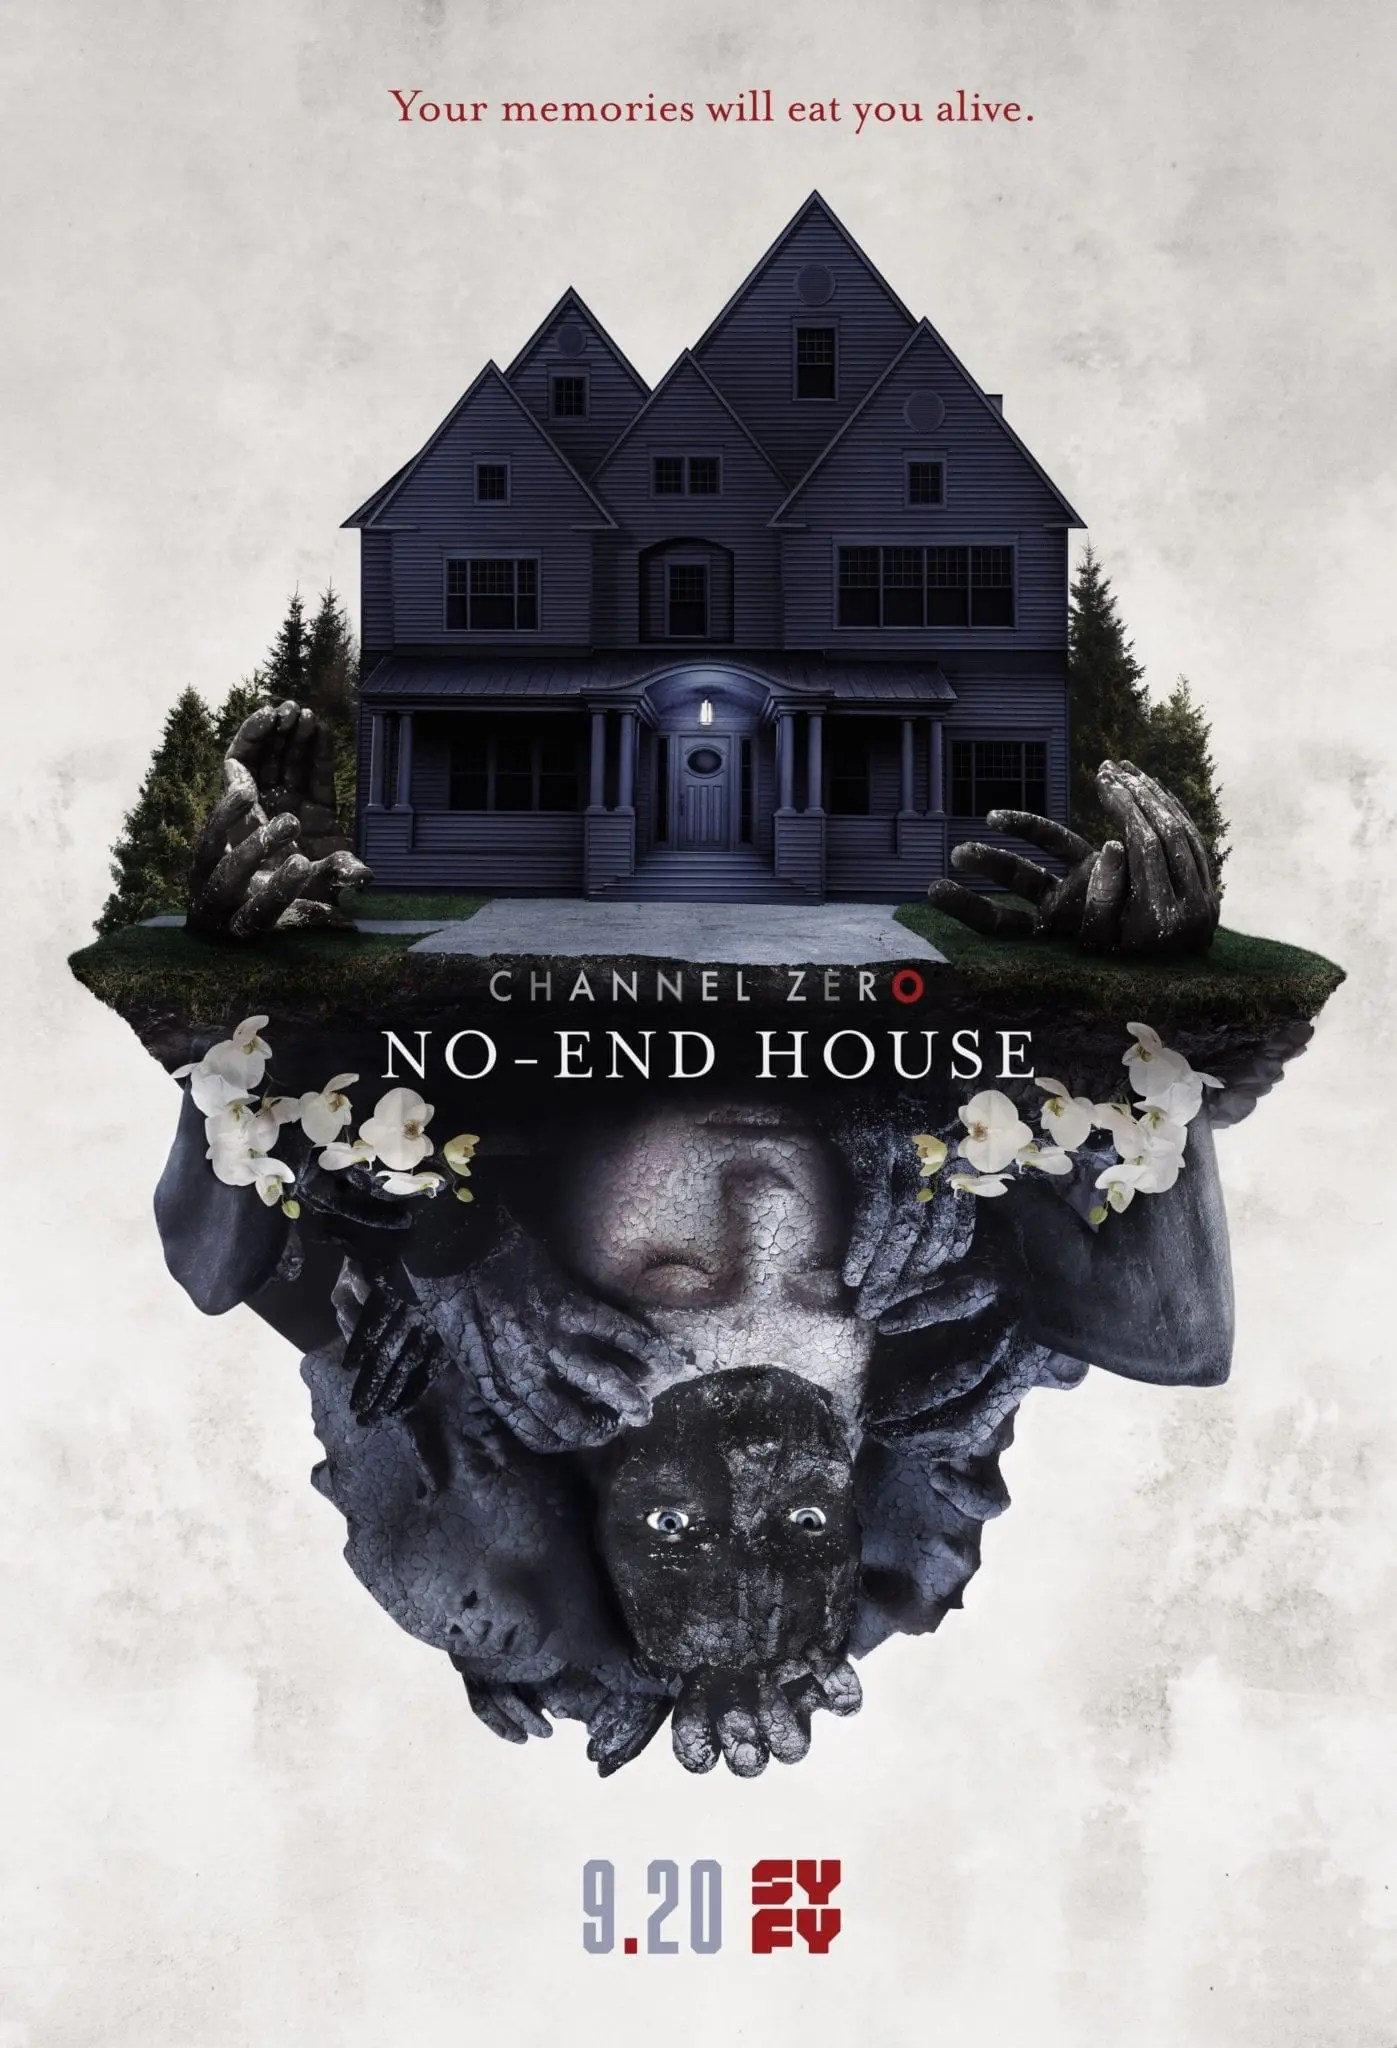 Channel-Zero-No-End House